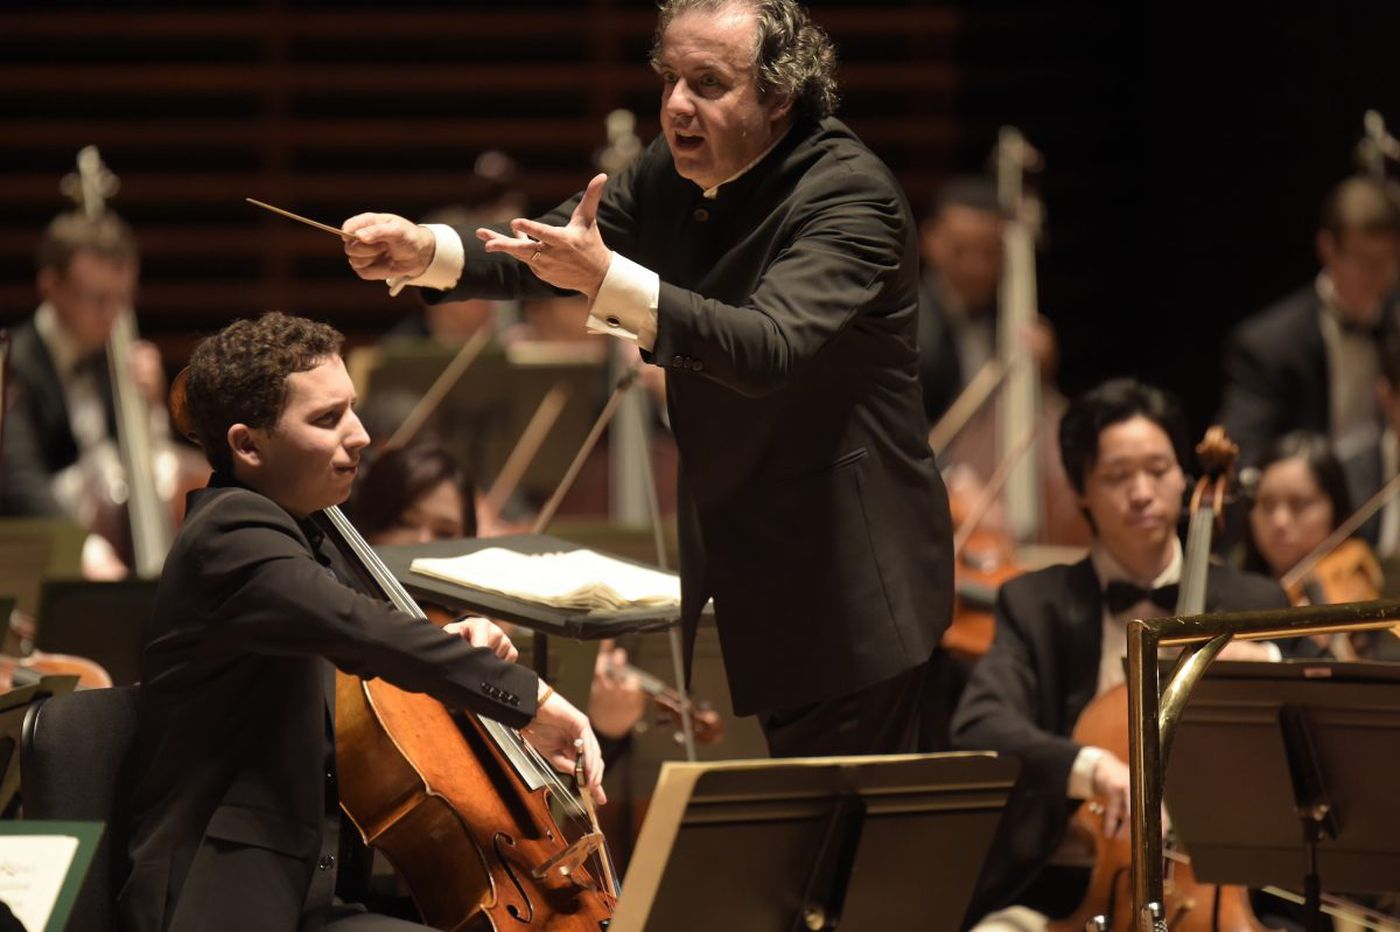 A fast ride for the Curtis Orchestra with conductor Juanjo Mena